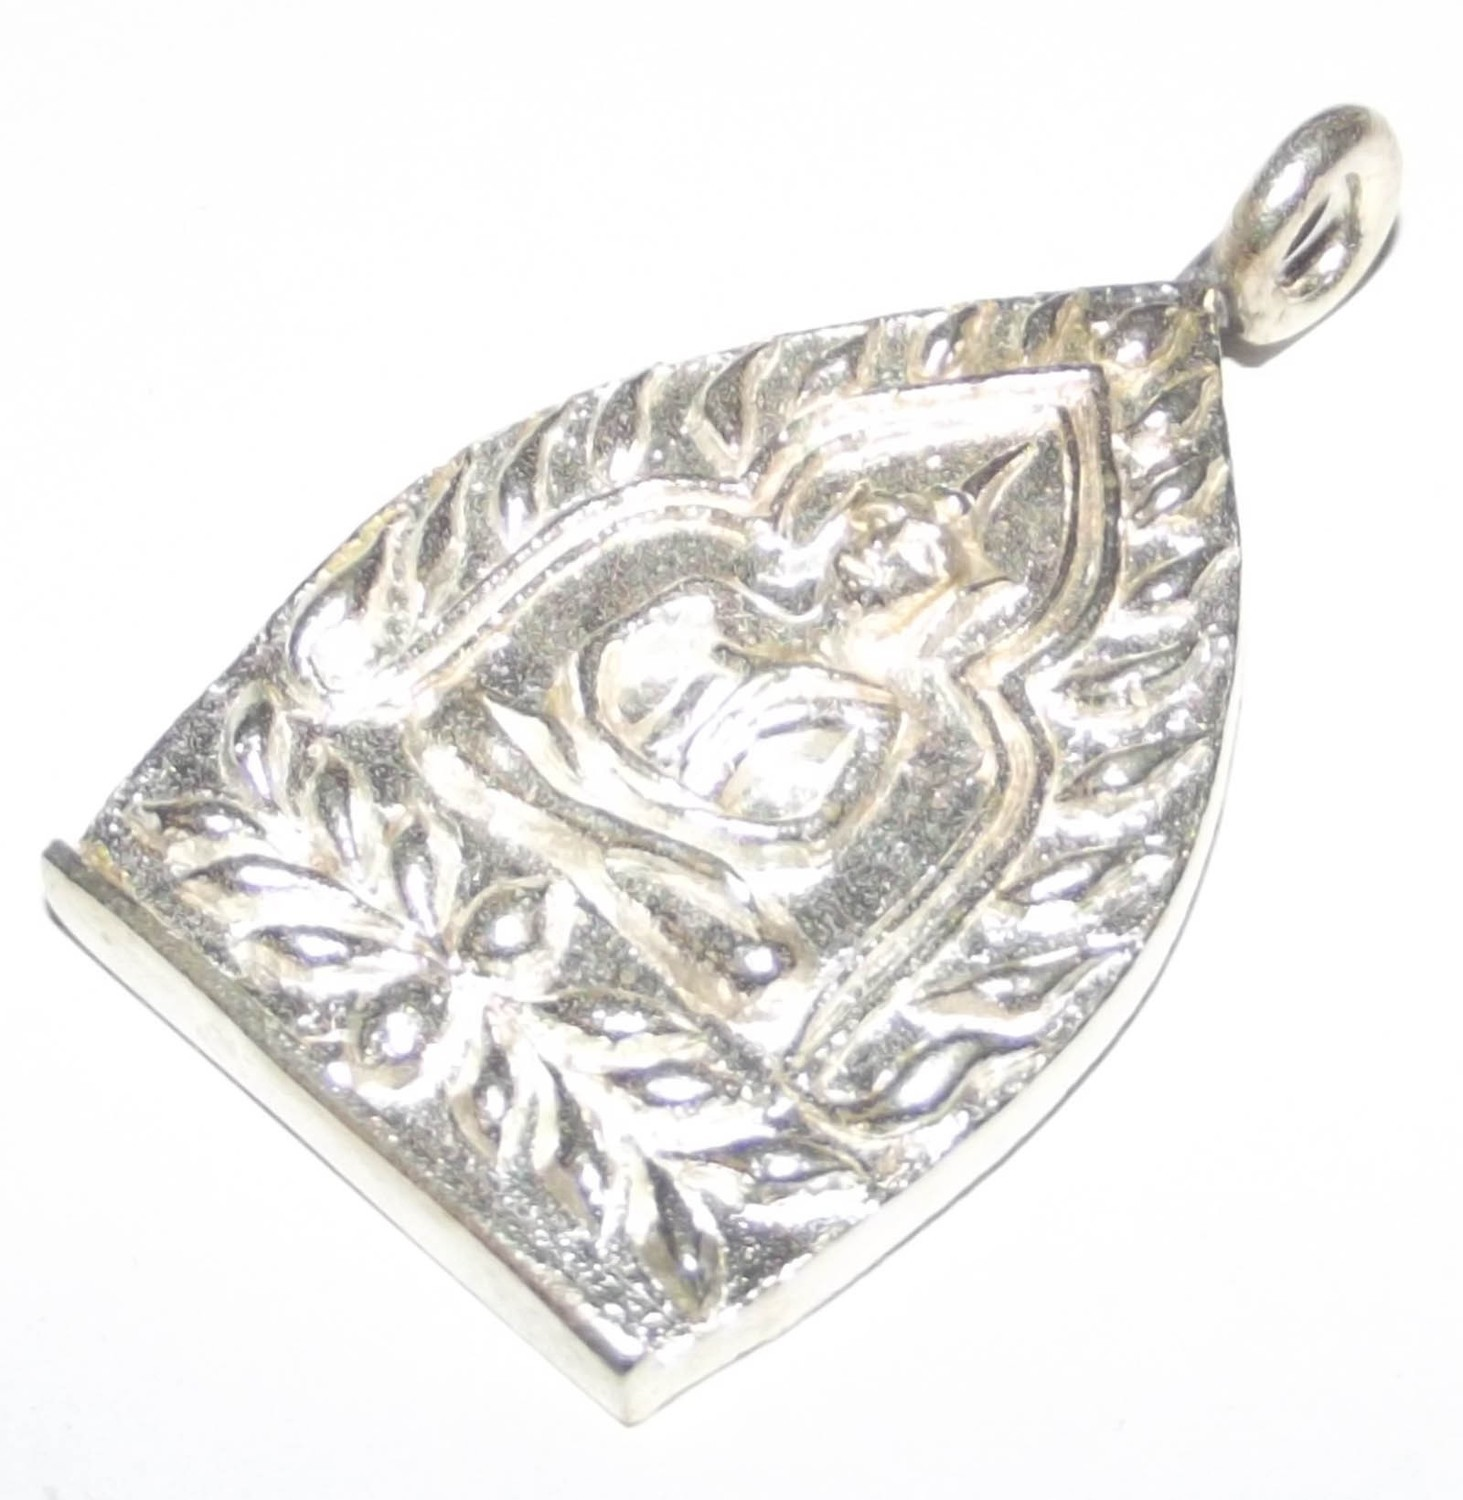 Rian Jao Sua Baeb Huang Chueam - Solid Silver with Hand Inscription - Sethee Yai Edition 2556 BE - Luang Por Jerd - only 99 made